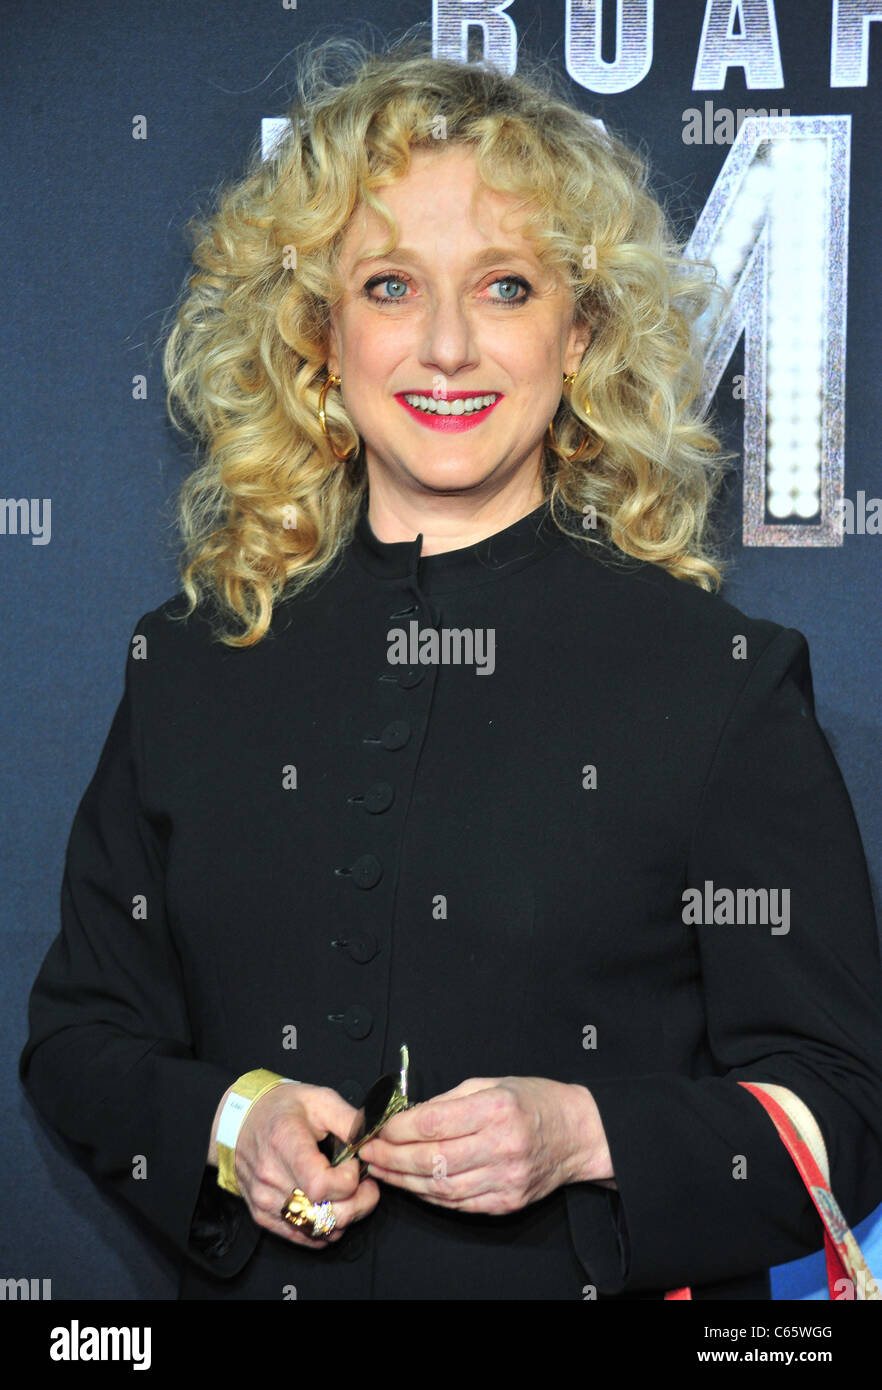 Carol Kane at arrivals for HBO's BOARDWALK EMPIRE Series Premiere, The Ziegfeld Theatre, New York, NY September - Stock Image